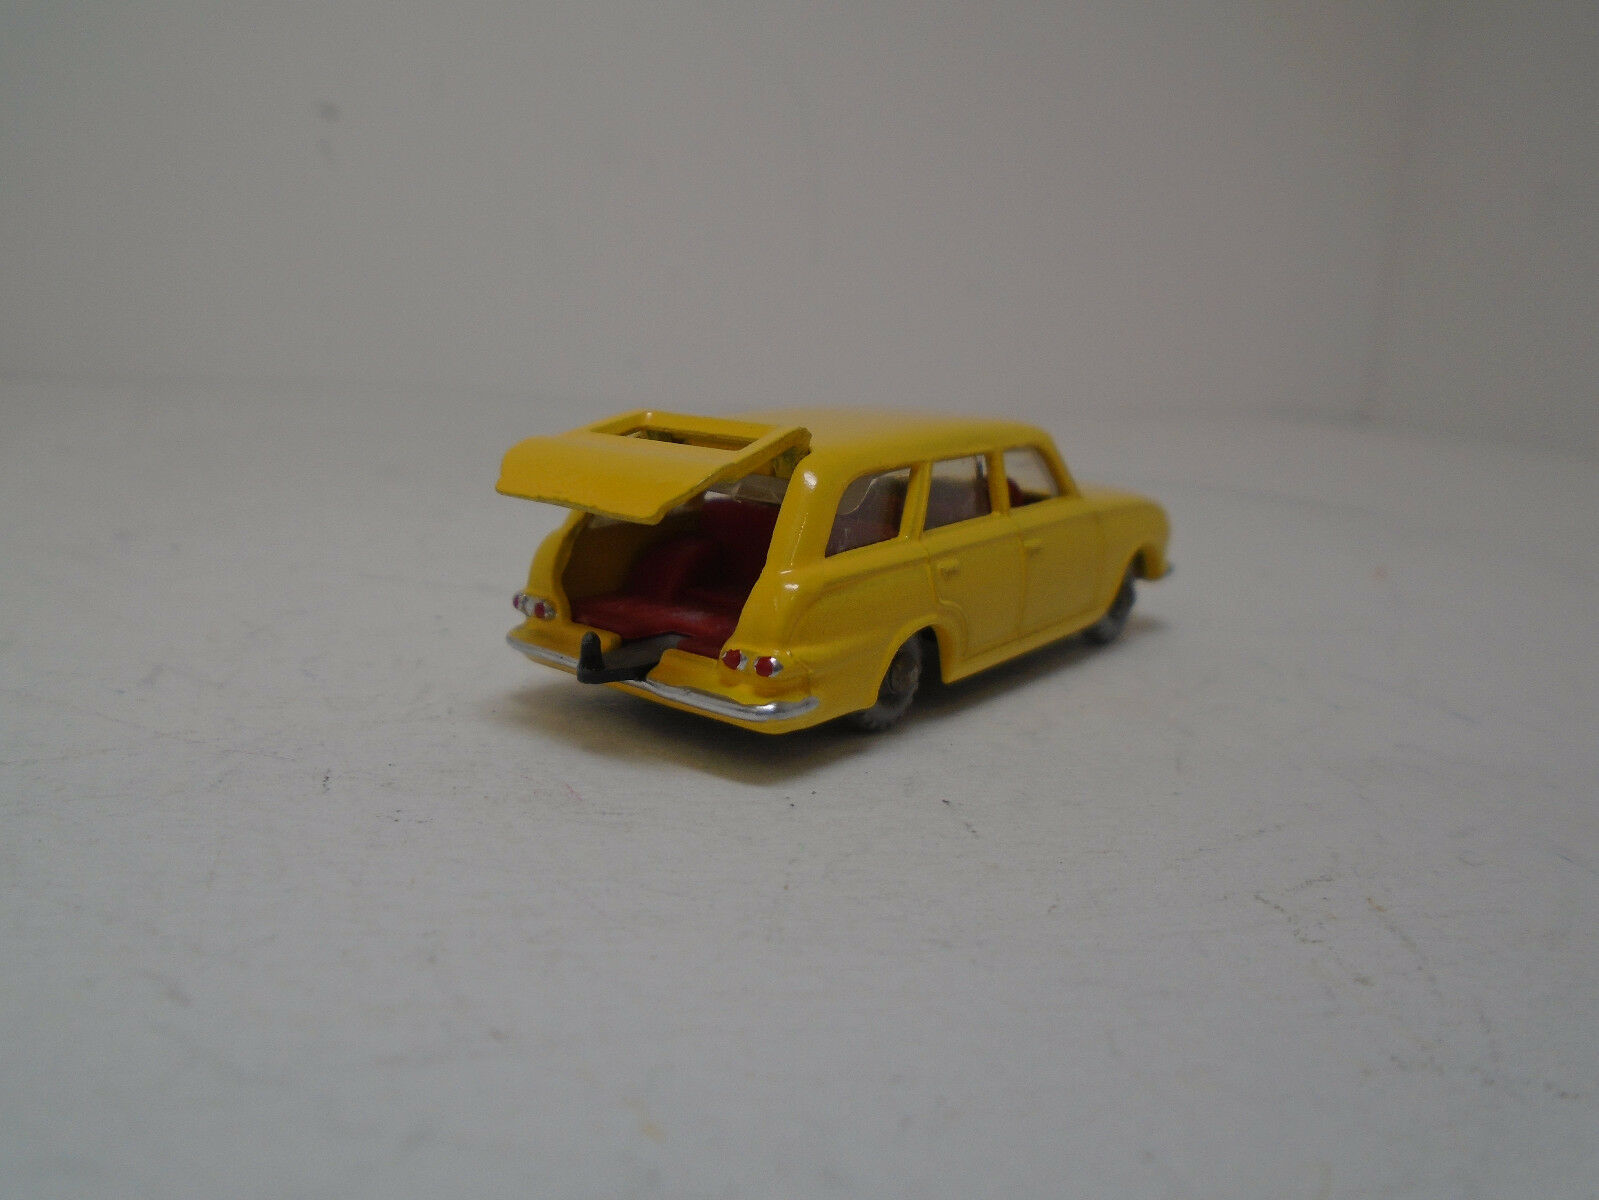 MOKO LESNEY MATCHBOX B VAUXHALL VICTOR ESTATE CAR RARE GPW, RESTORED-MODIFIED